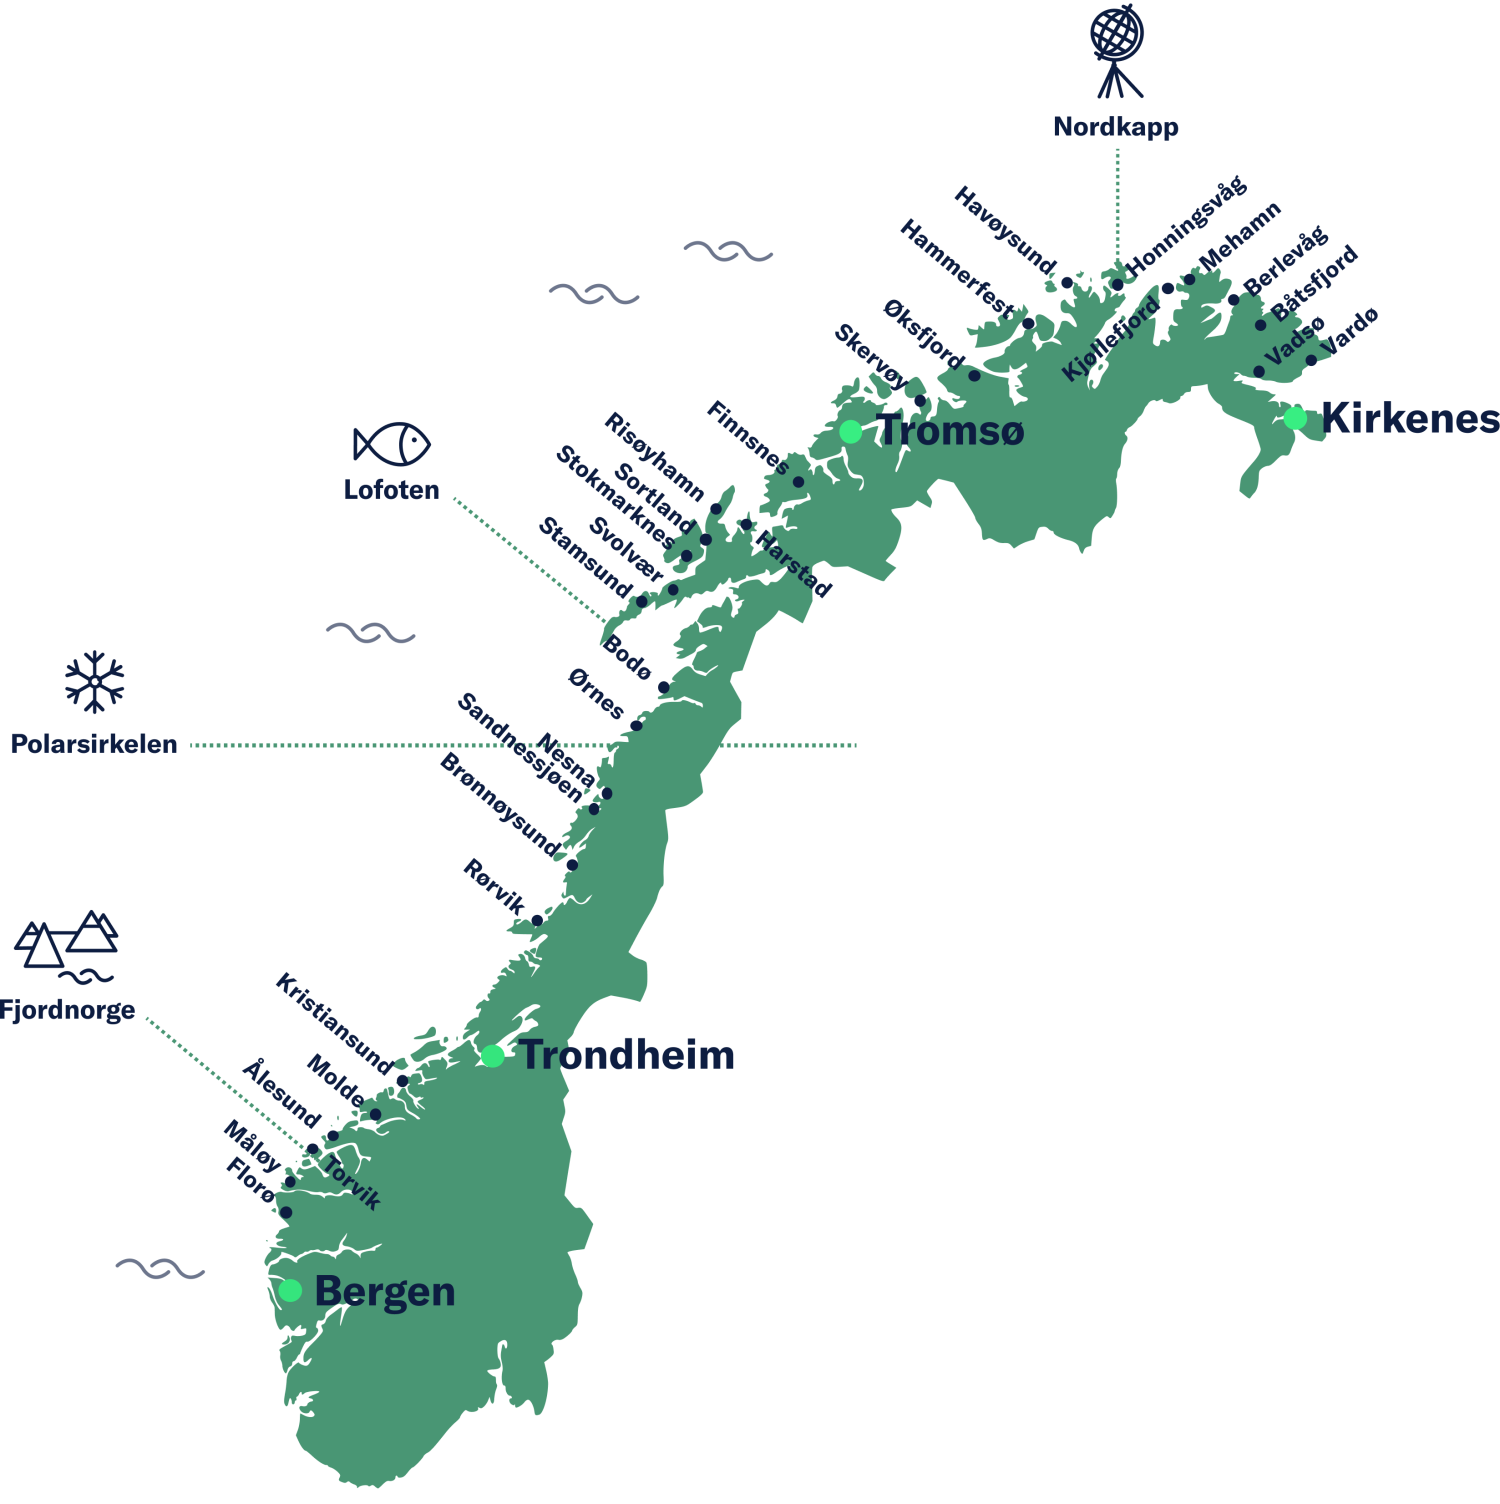 Map of Norway showing ports serviced by Havila.